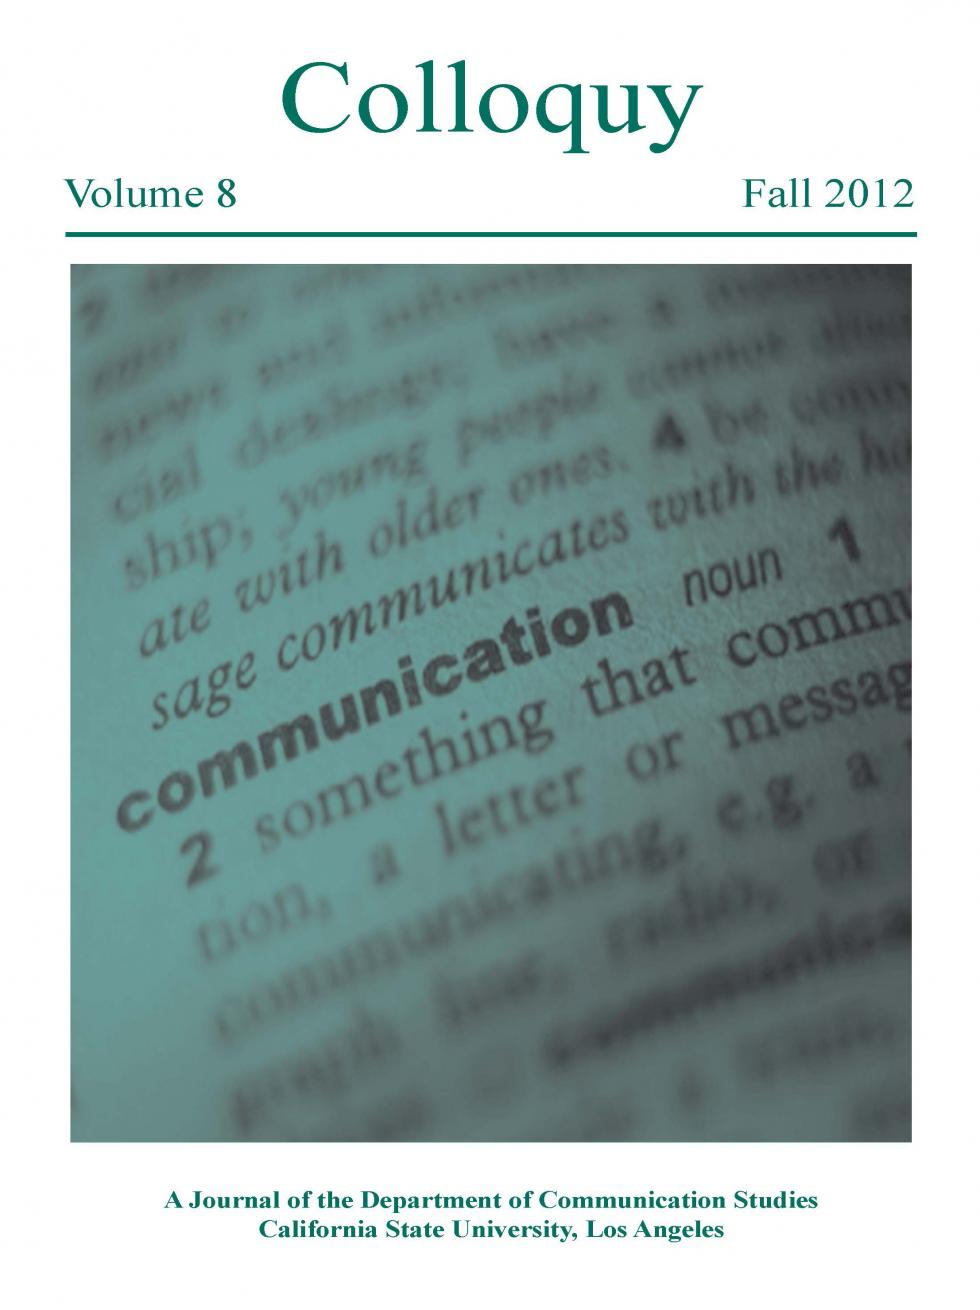 Link to 2012 issue of Colloquy